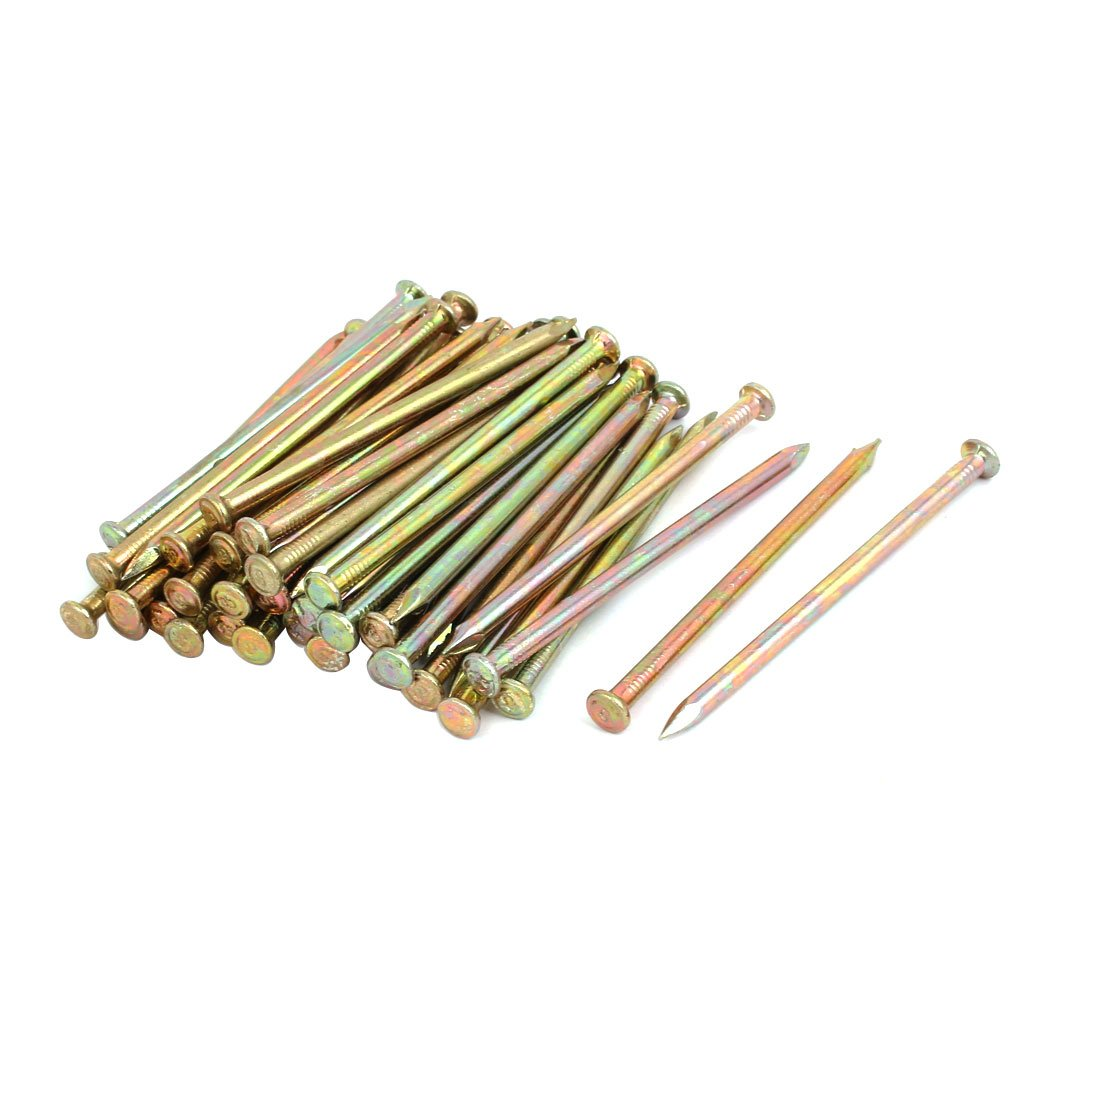 uxcell 50pcs 100mm Length Steel Point Tip Cement Nail Bronze Tone